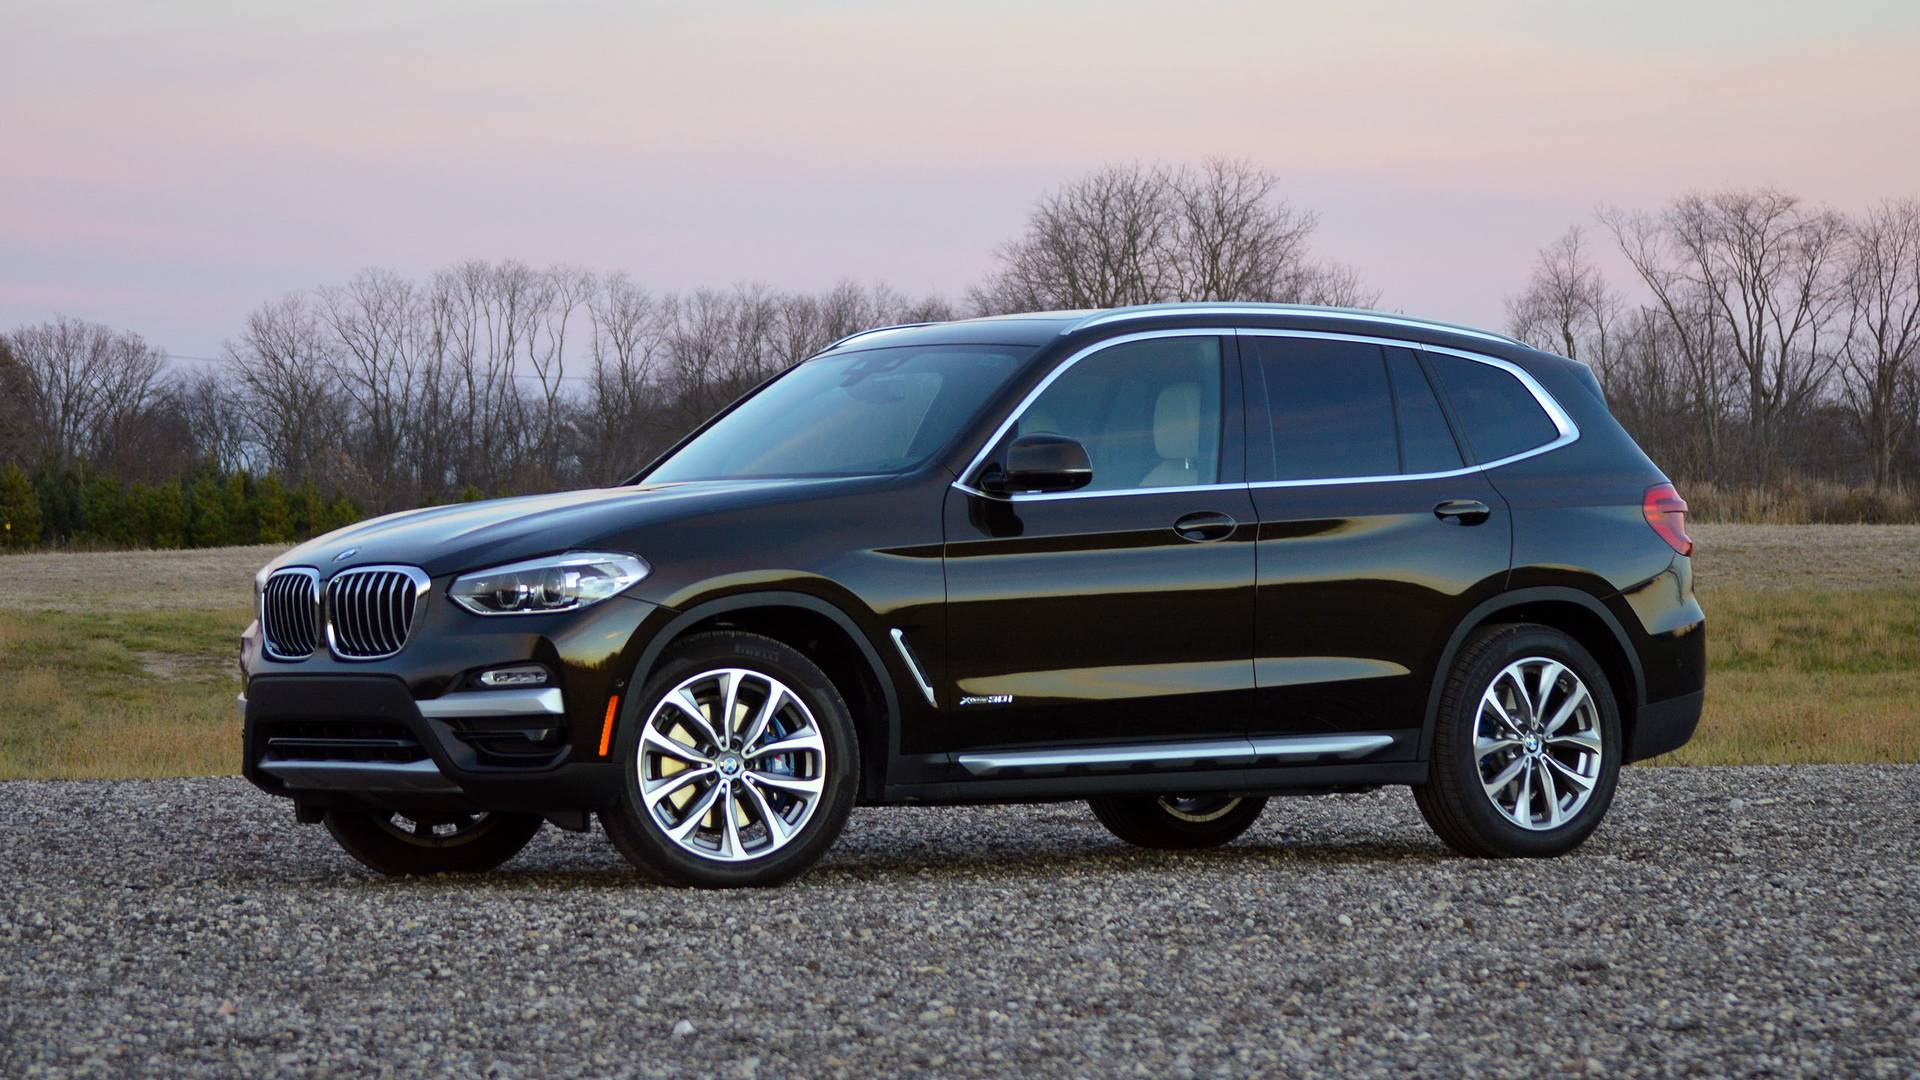 Cuv Car 2018 Bmw X3 Review The Lux Cuv Segment Gets Deeper